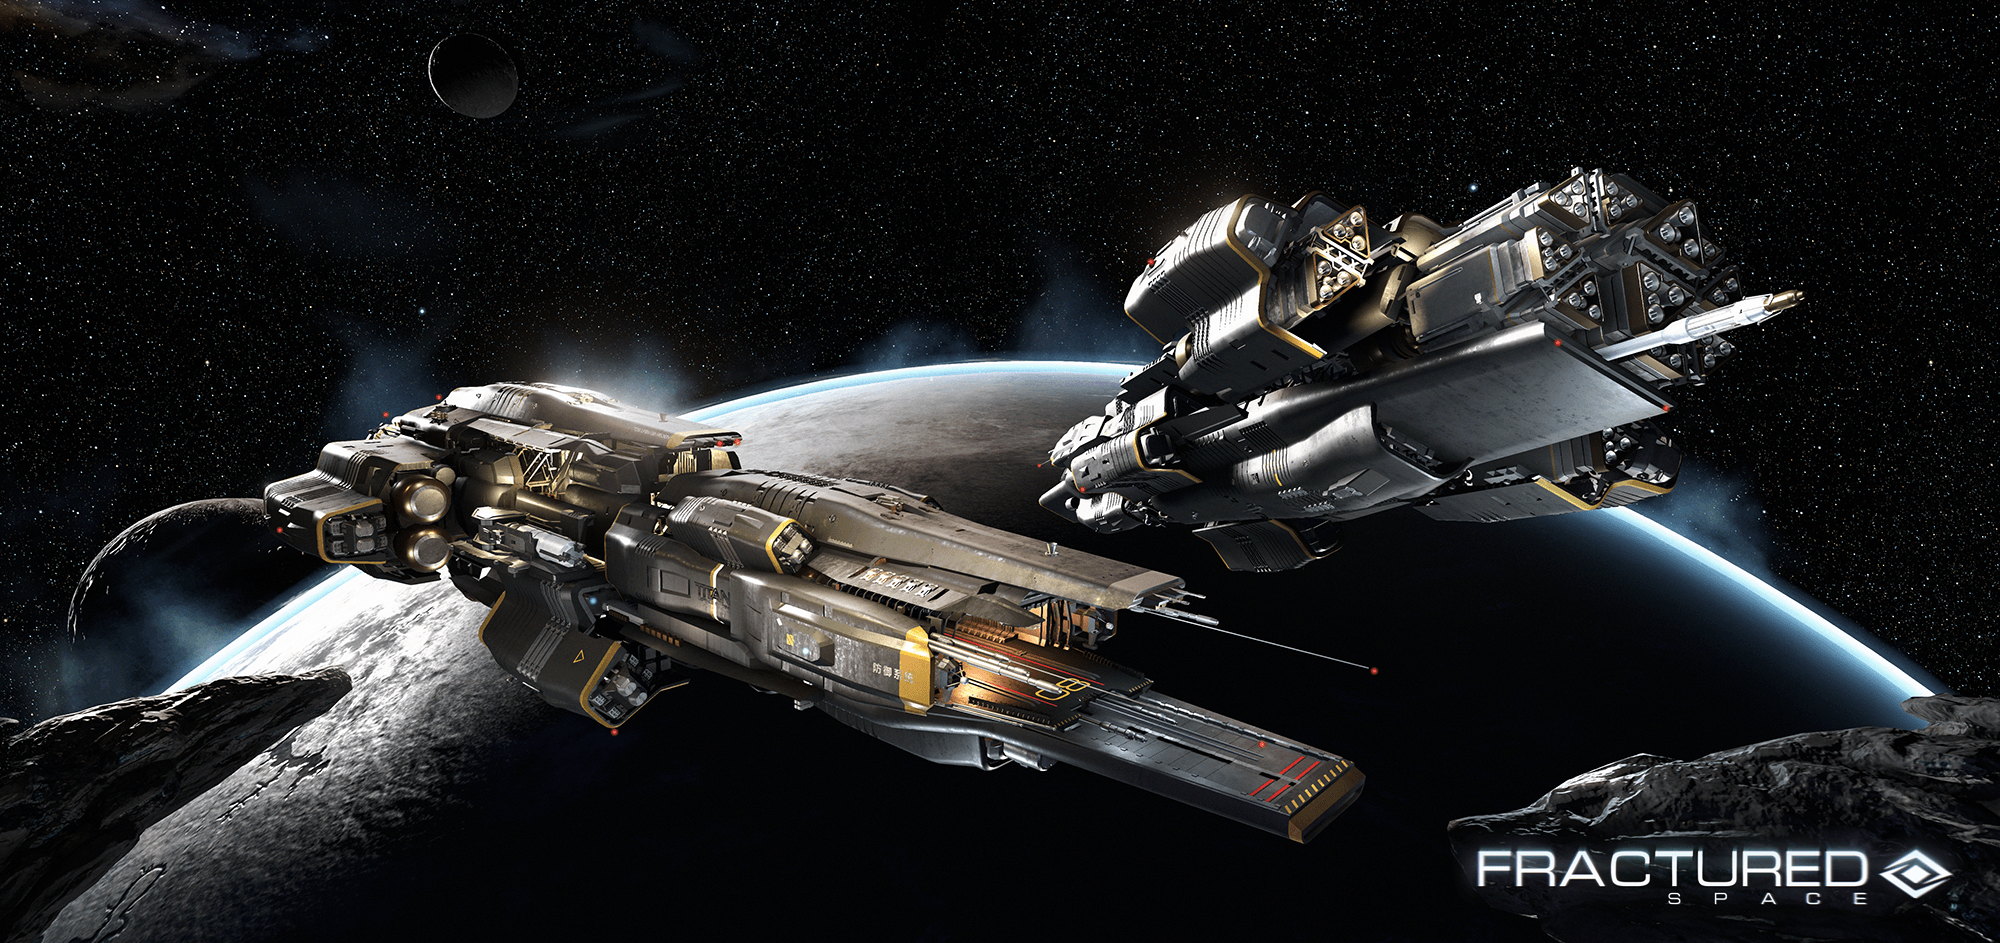 Fractured Space Adds New Squadron Command Feature & Additional Content Post Main